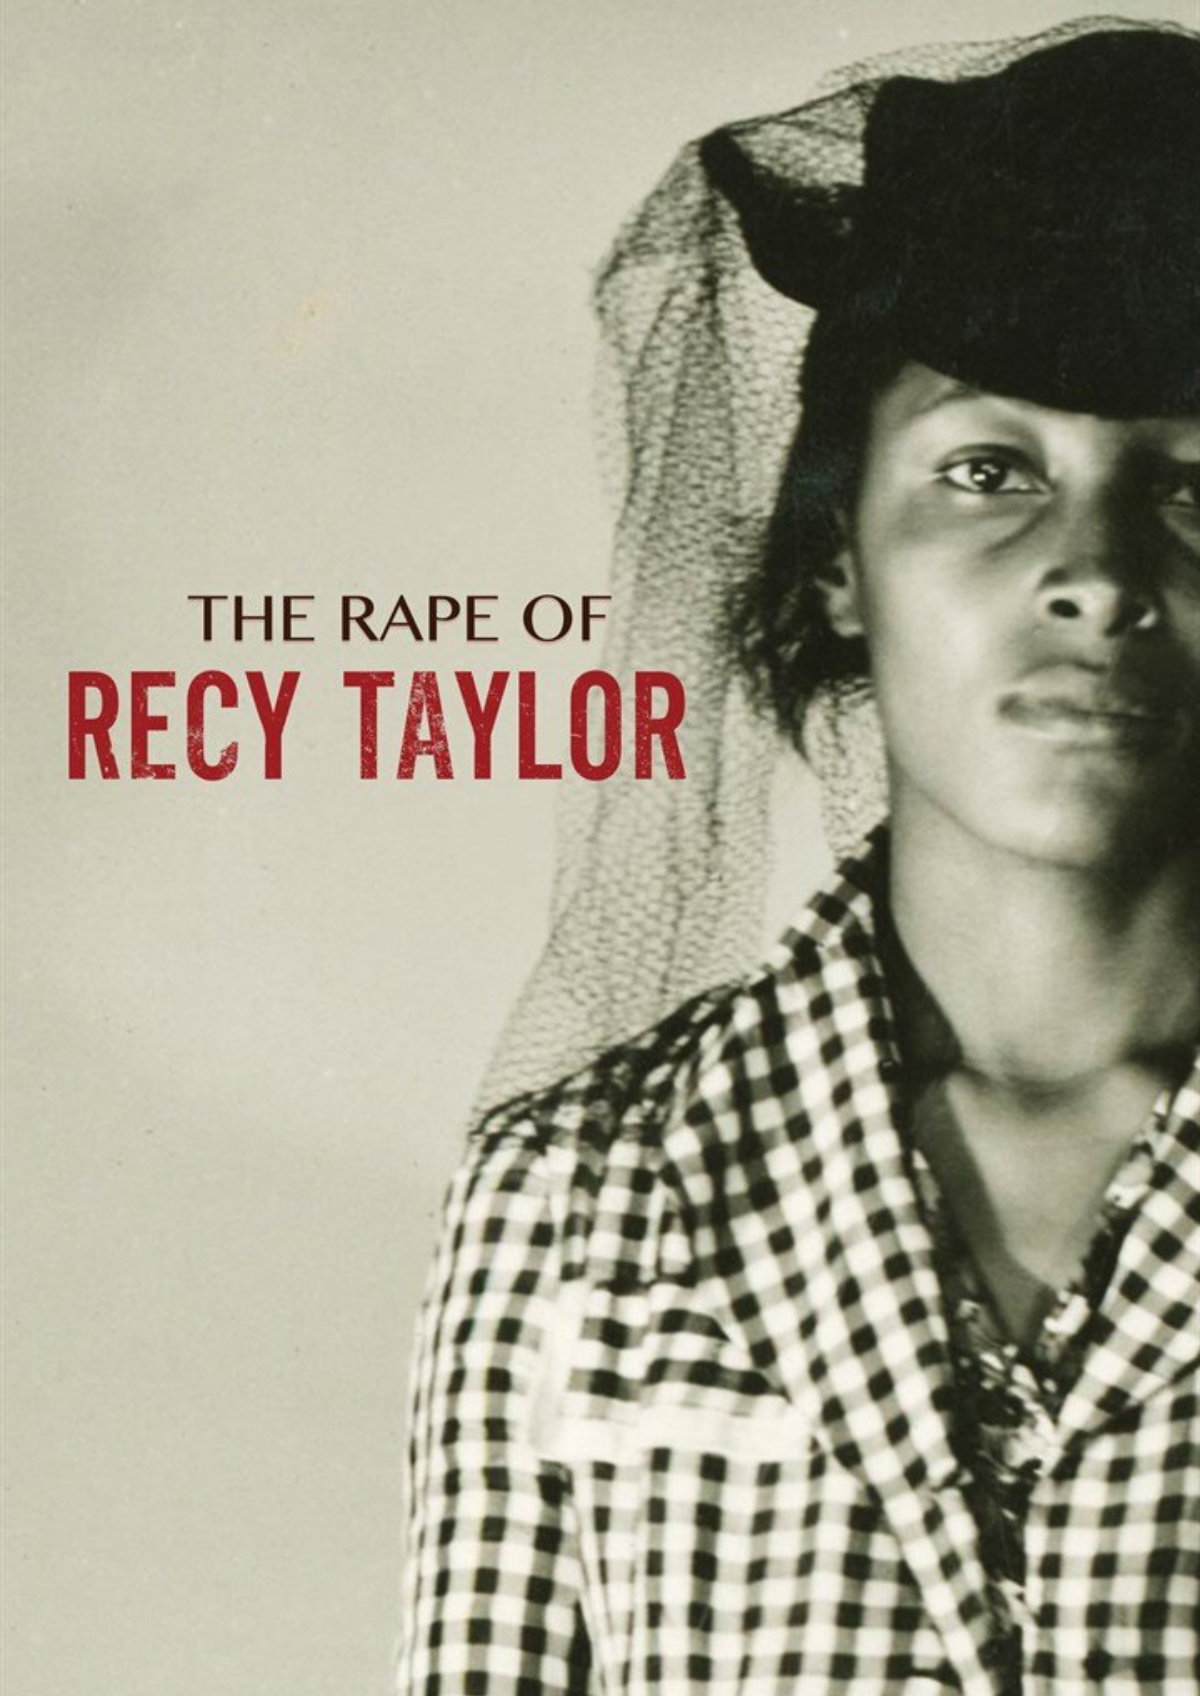 'The Rape Of Recy Taylor' movie poster